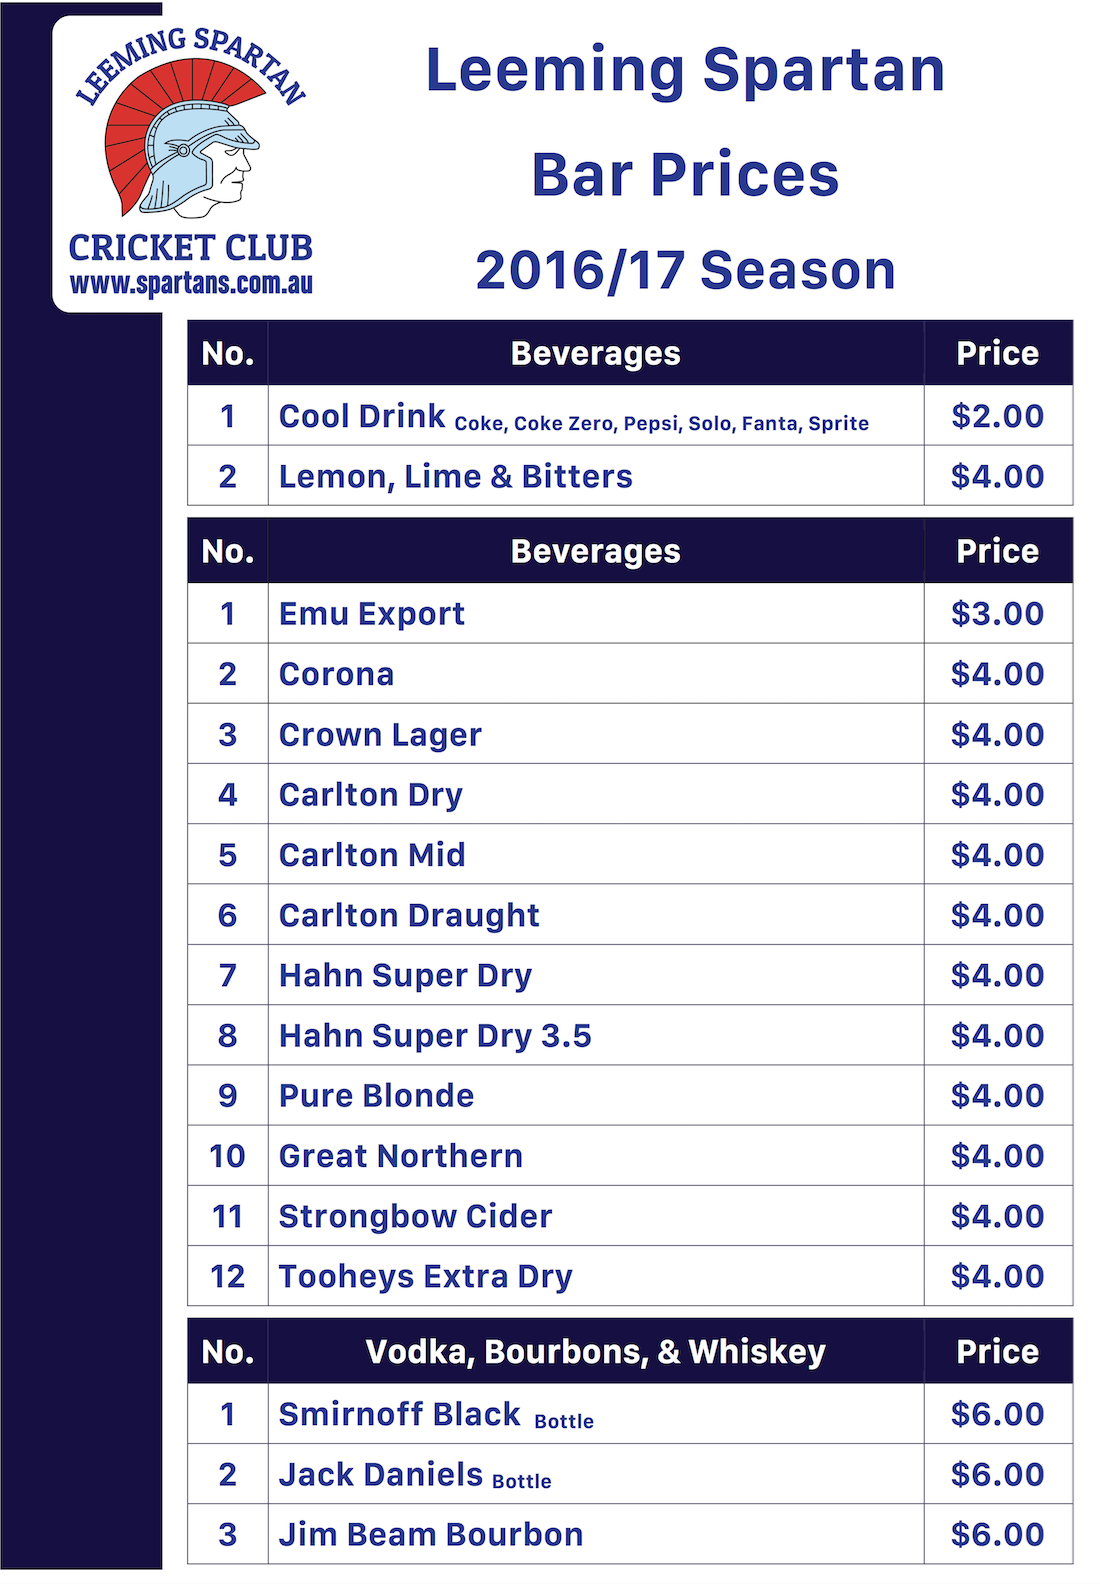 Spartan Bar Prices 2016/17